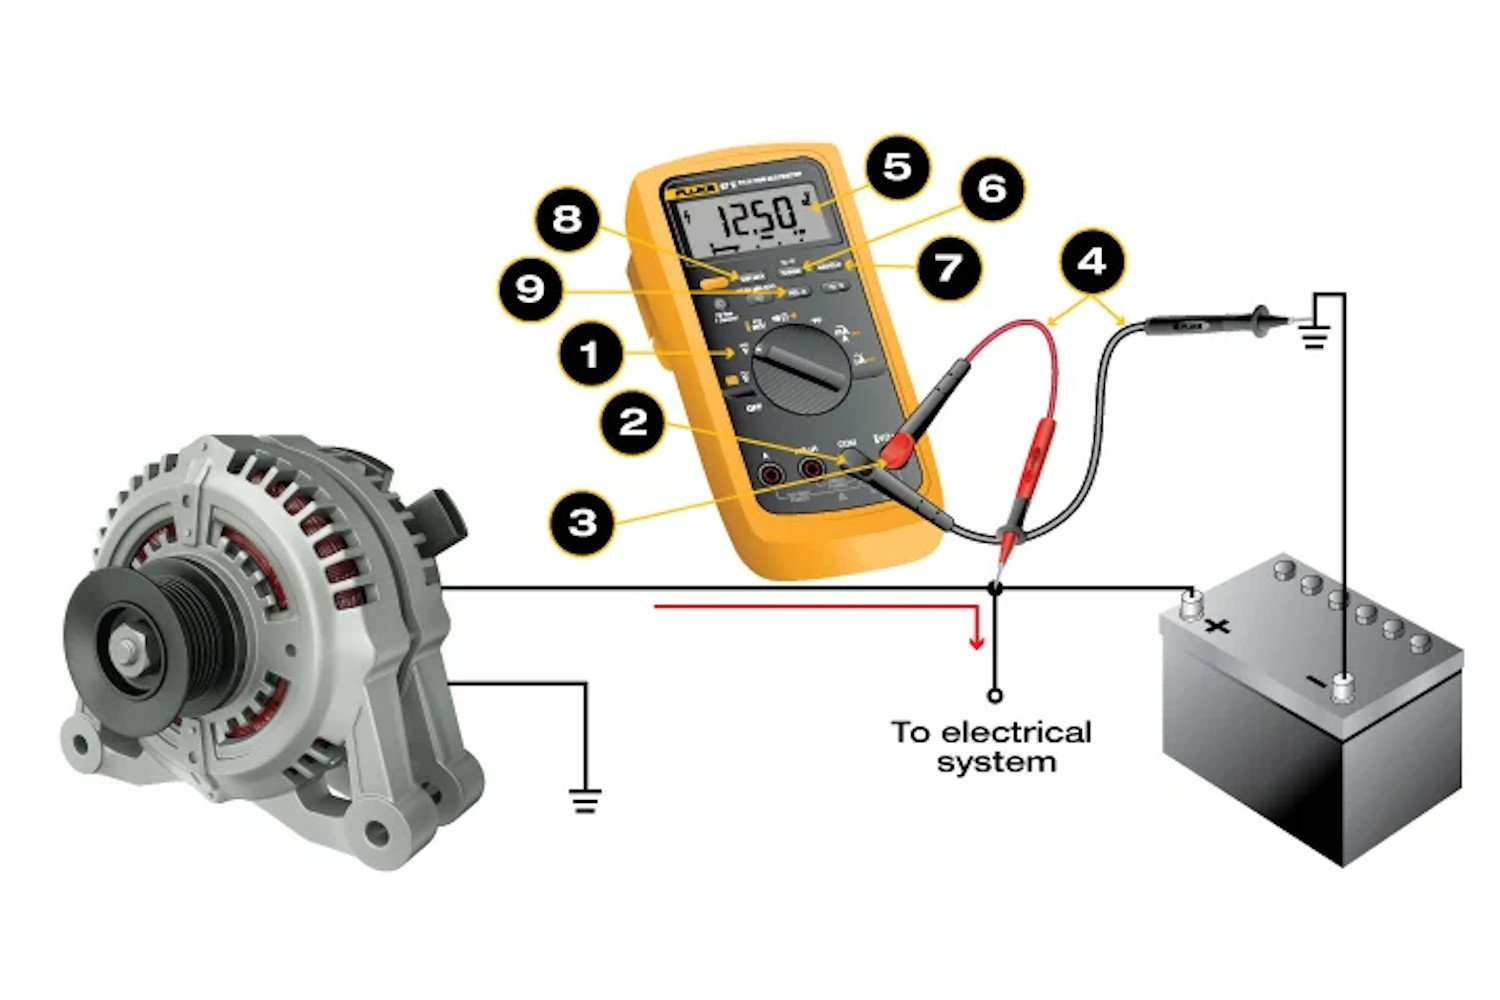 Steps for measuring dc voltage with a digital multimeter